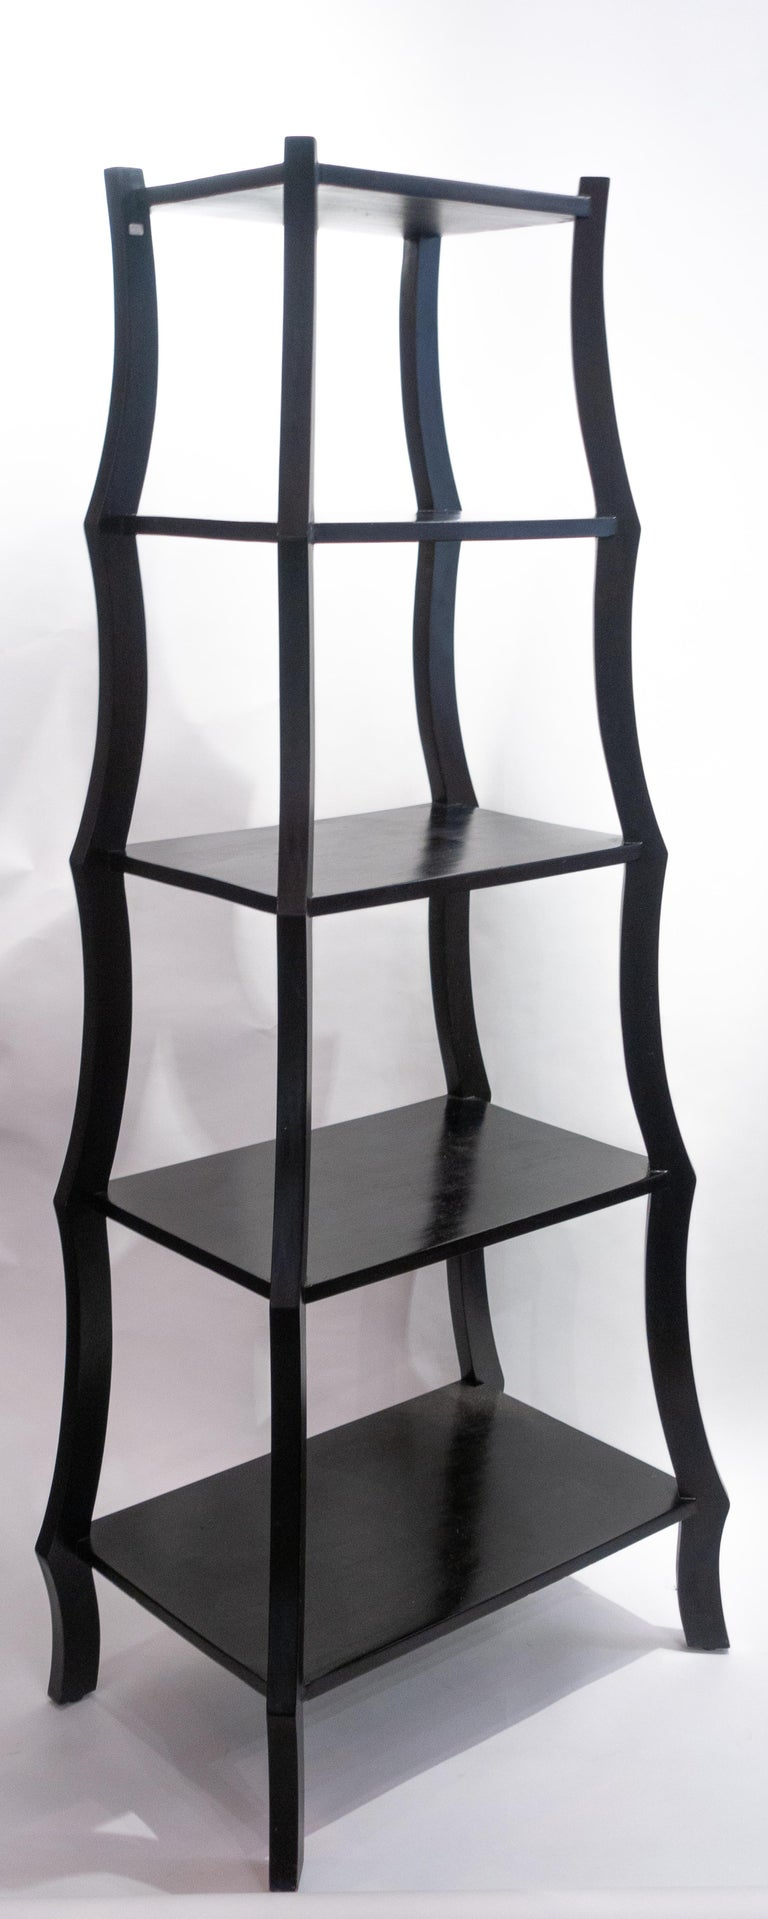 Black Free Standing Étagère In Good Condition For Sale In New York, NY